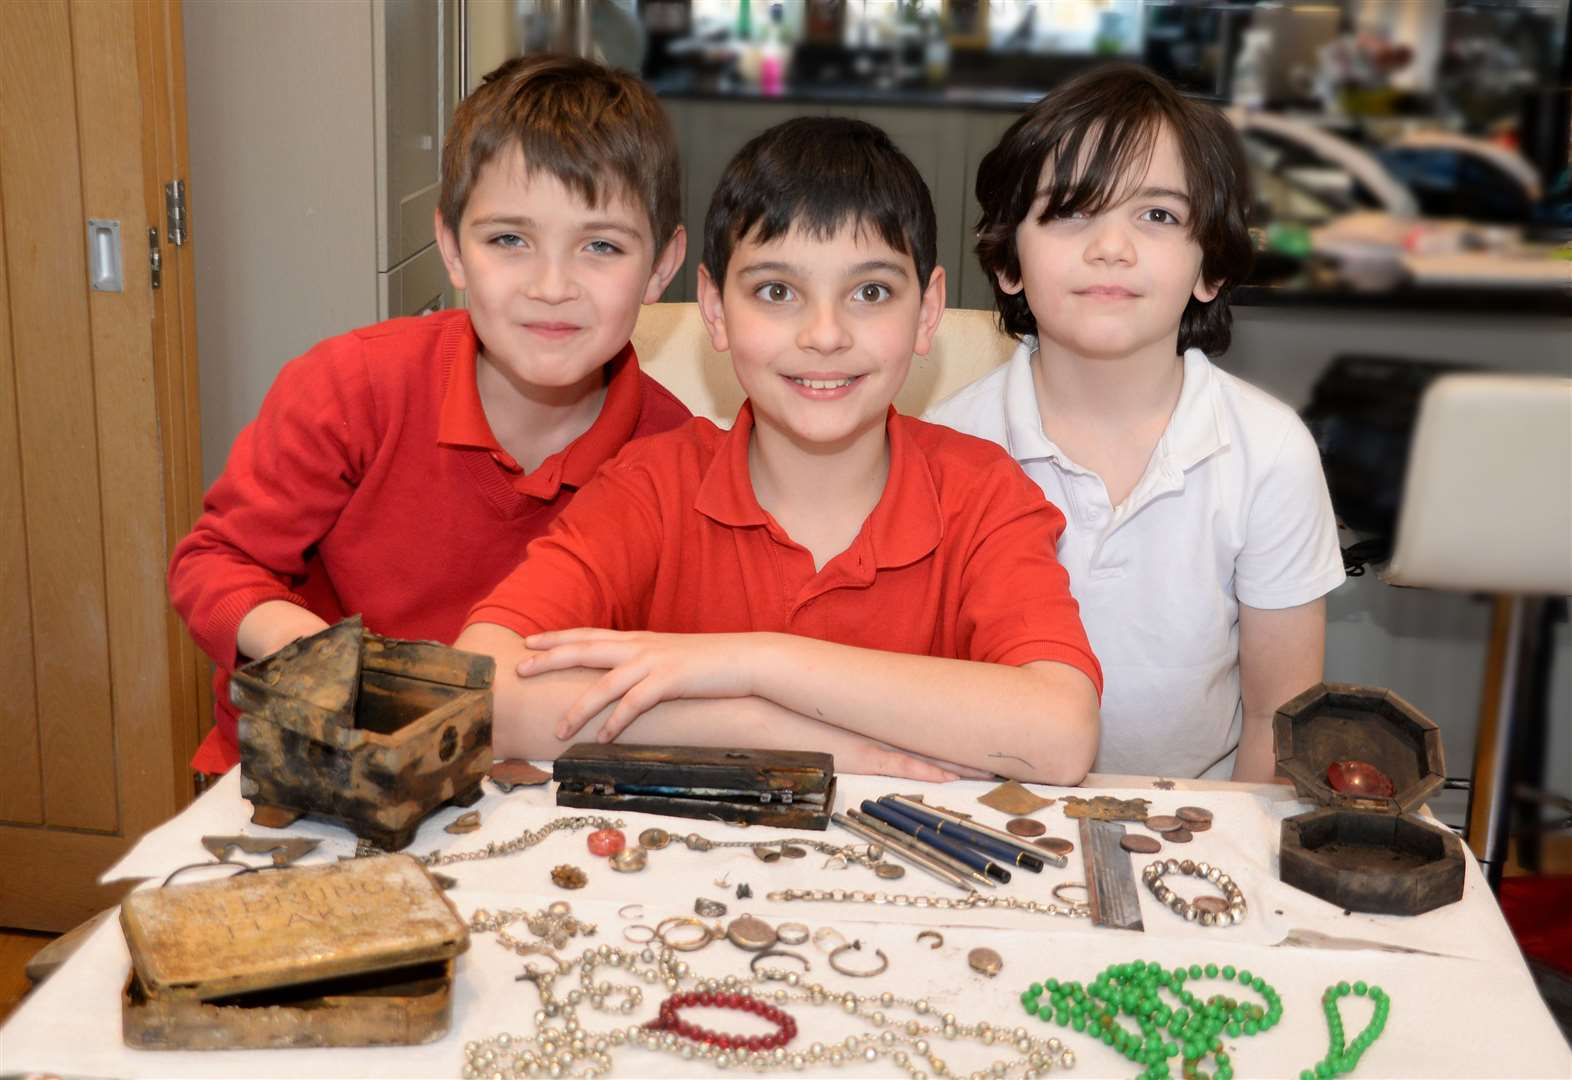 Bishop's Stortford brothers find 'stolen treasure' while out for a family walk in Much Hadham